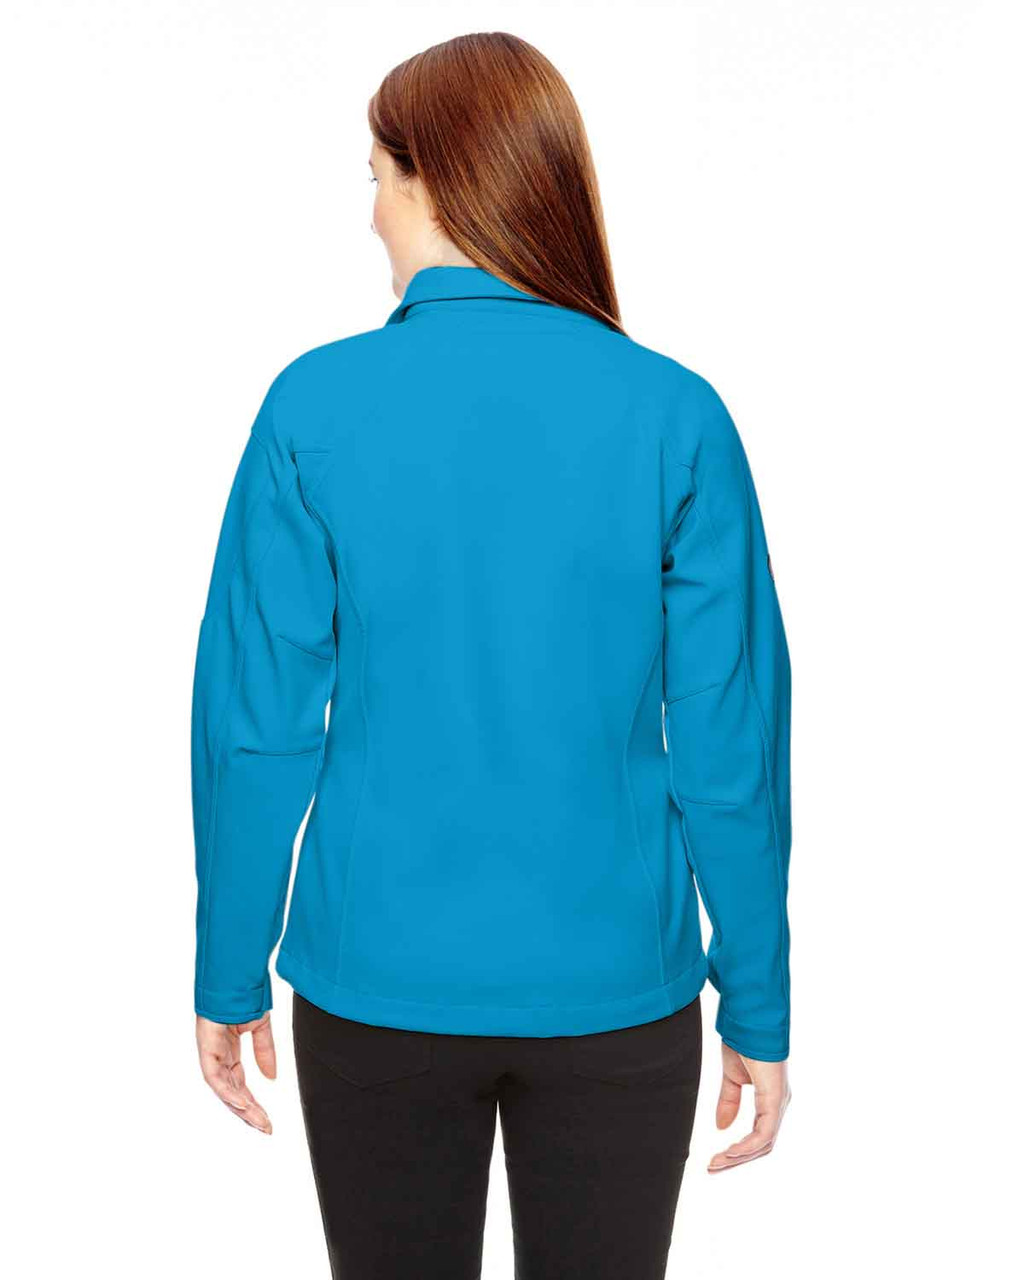 Dark Atomic - Back, 85000 Marmot Ladies' Gravity Jacket | BlankClothing.ca